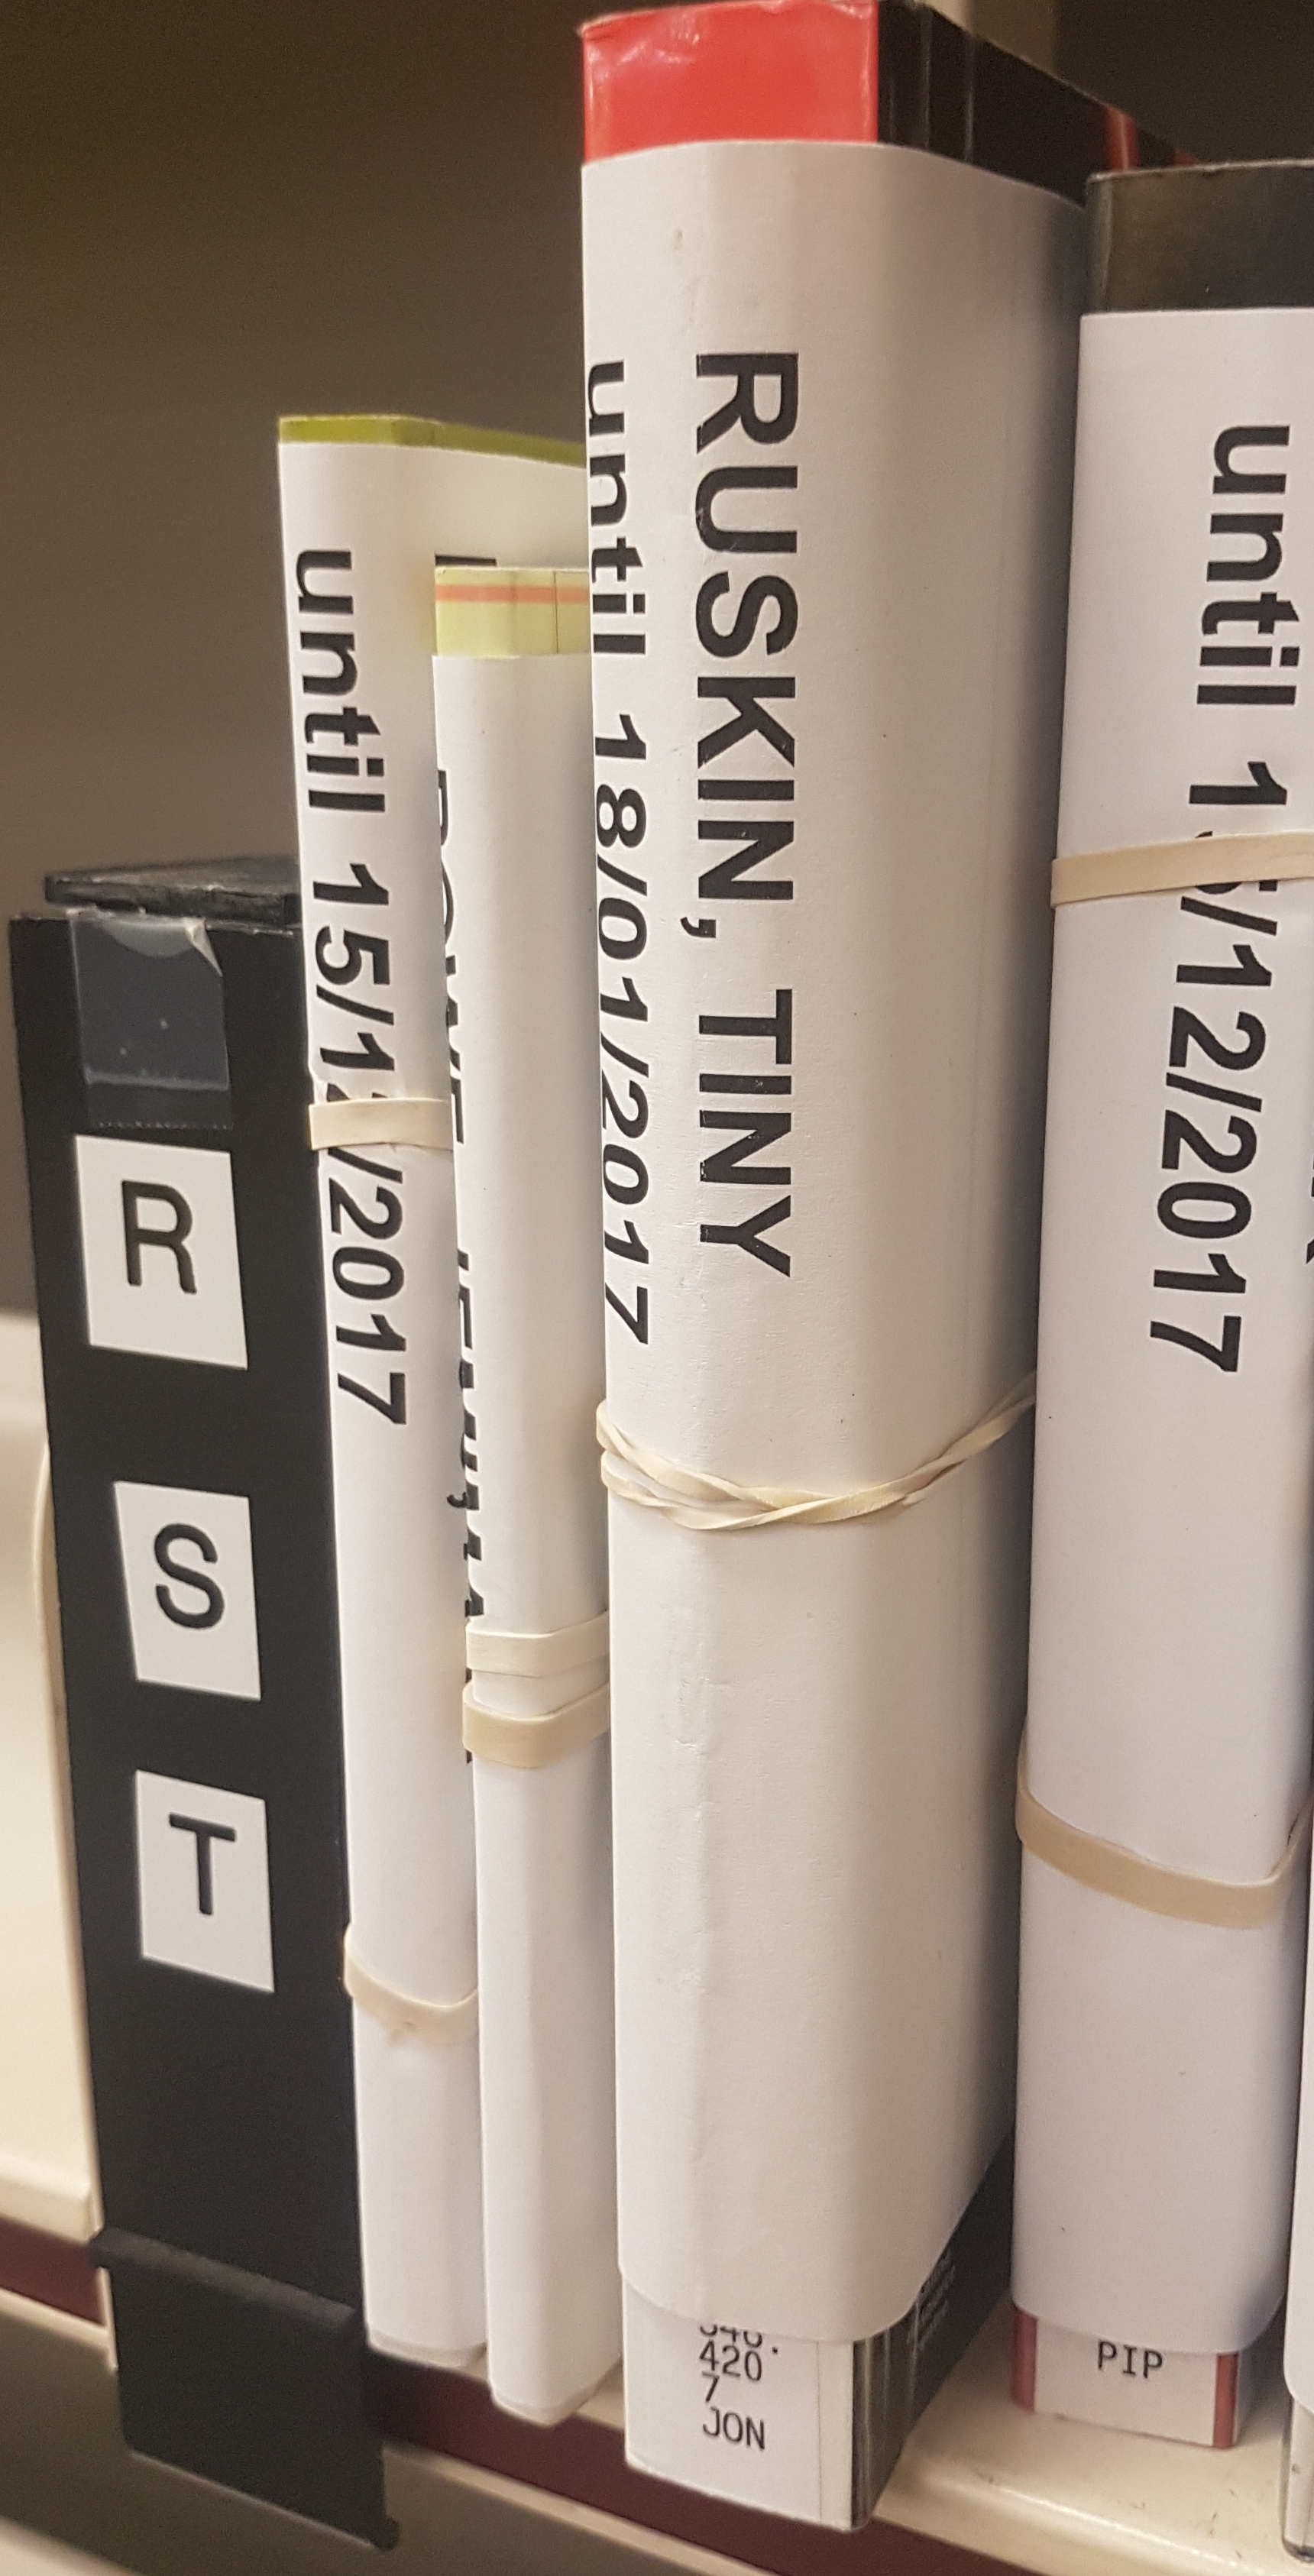 Photo of books on the reservation shelf